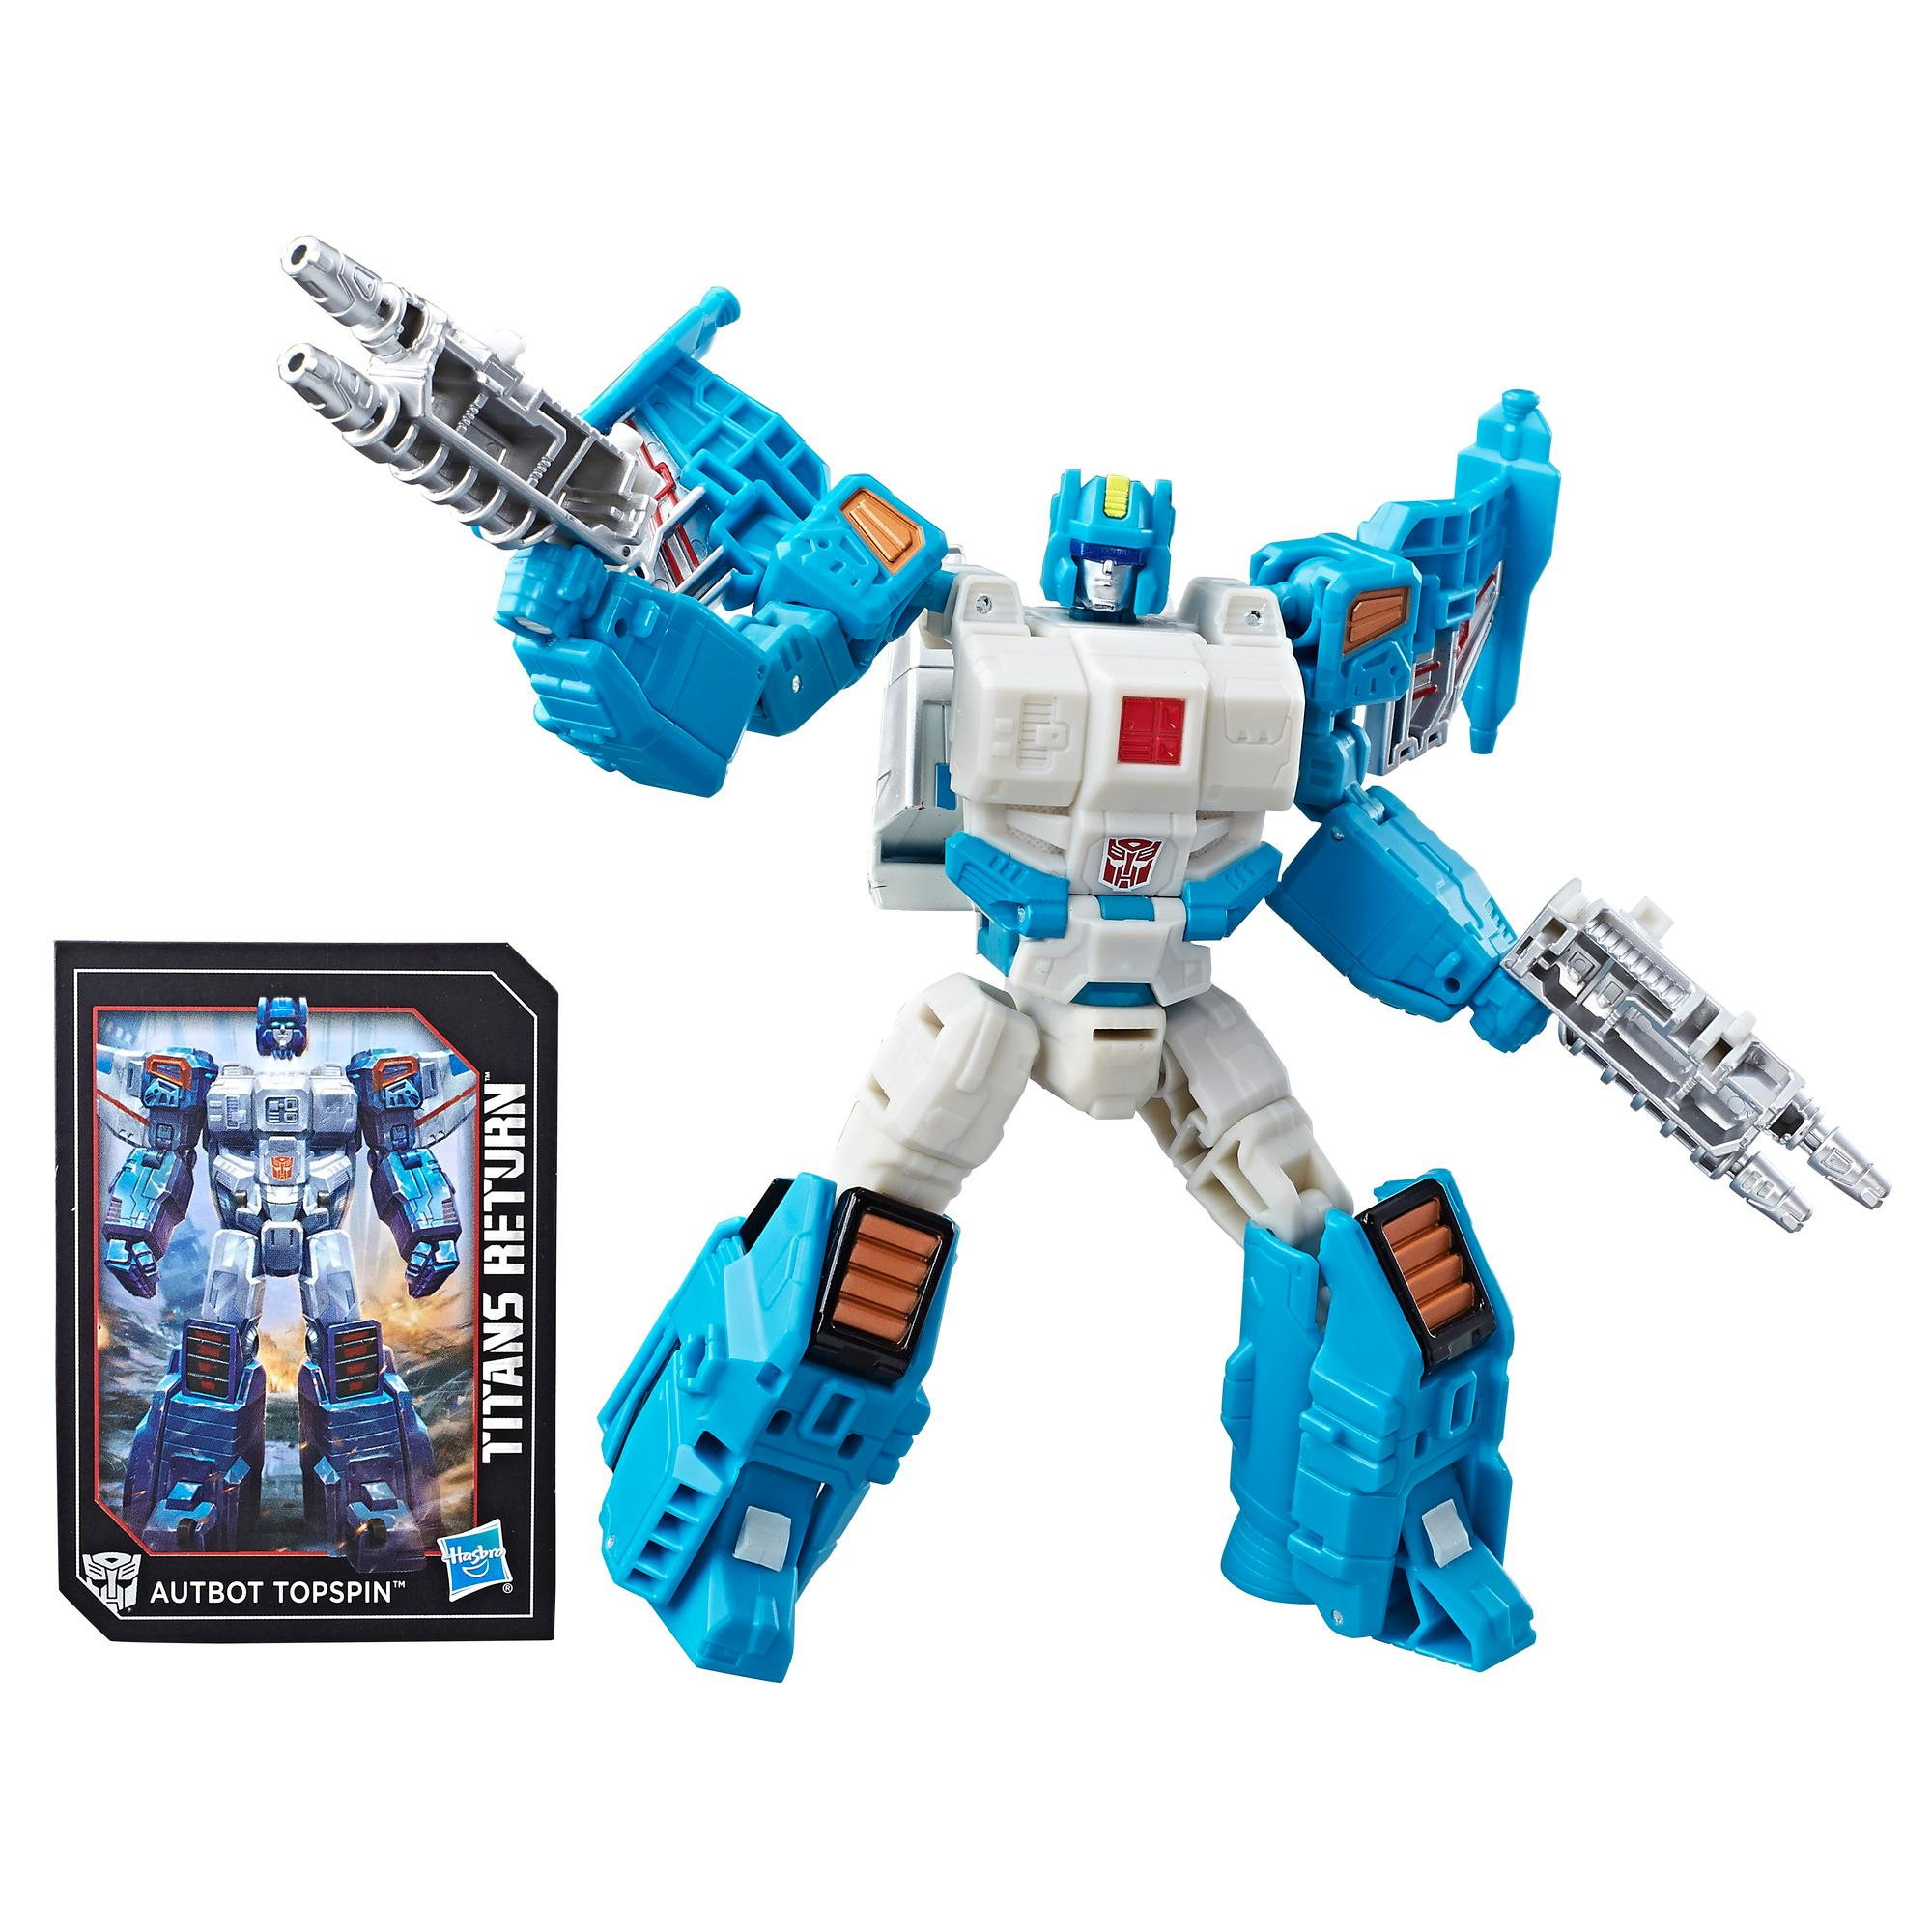 Transformers Generations Titans Return Deluxe TOPSPIN